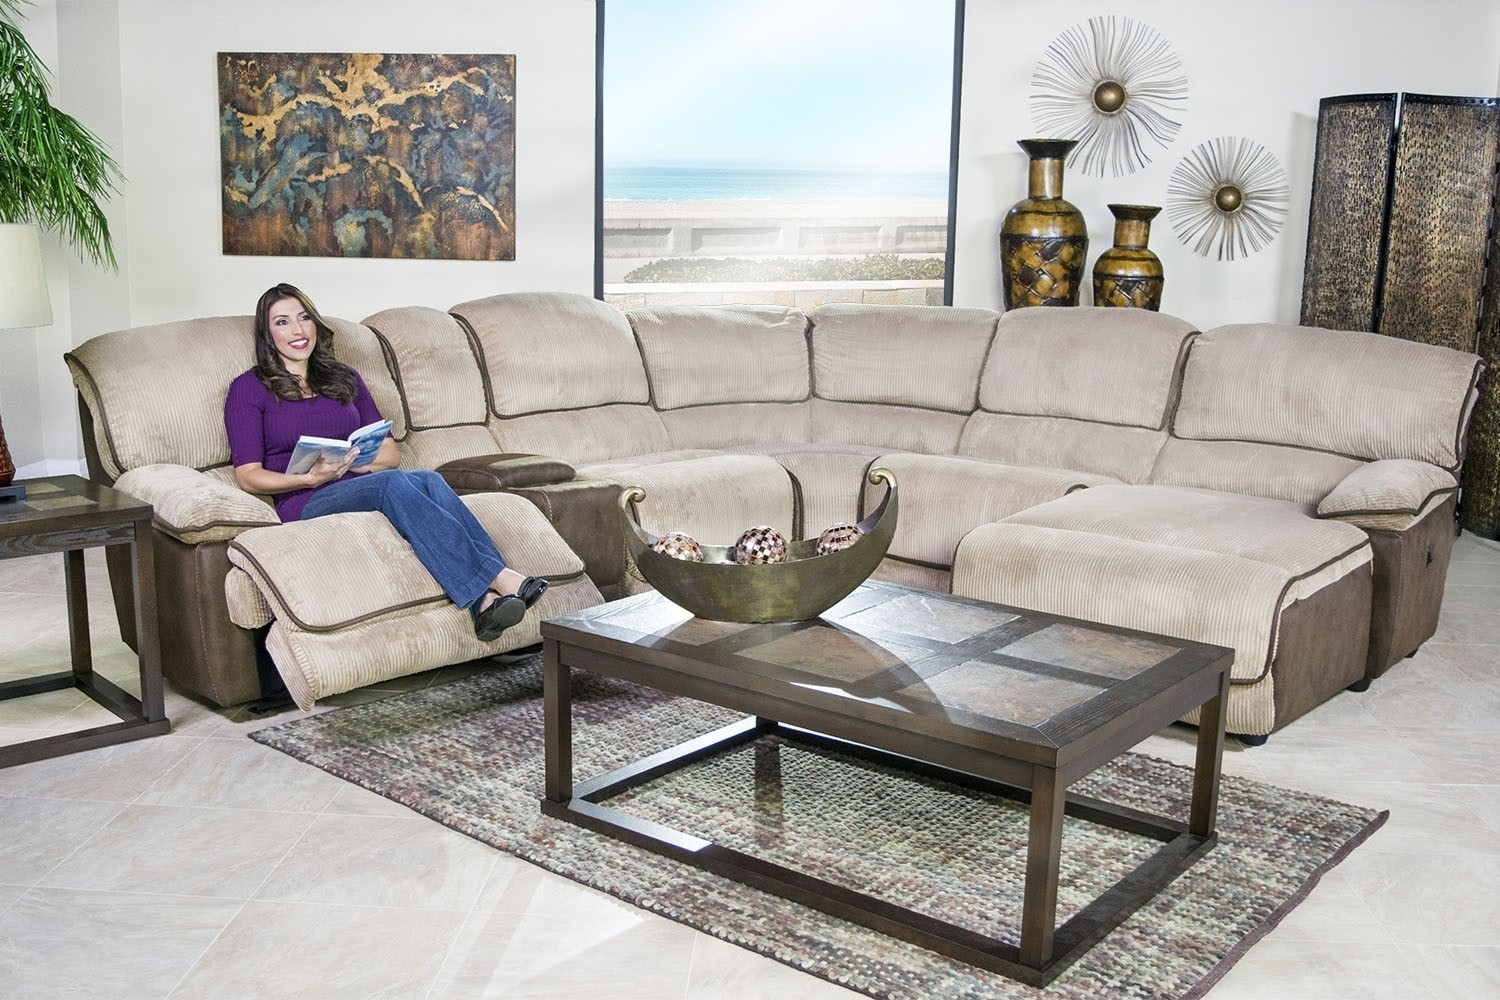 Awesome Sectional Sofa Austin – Buildsimplehome For Austin Sectional Sofas (Image 2 of 10)